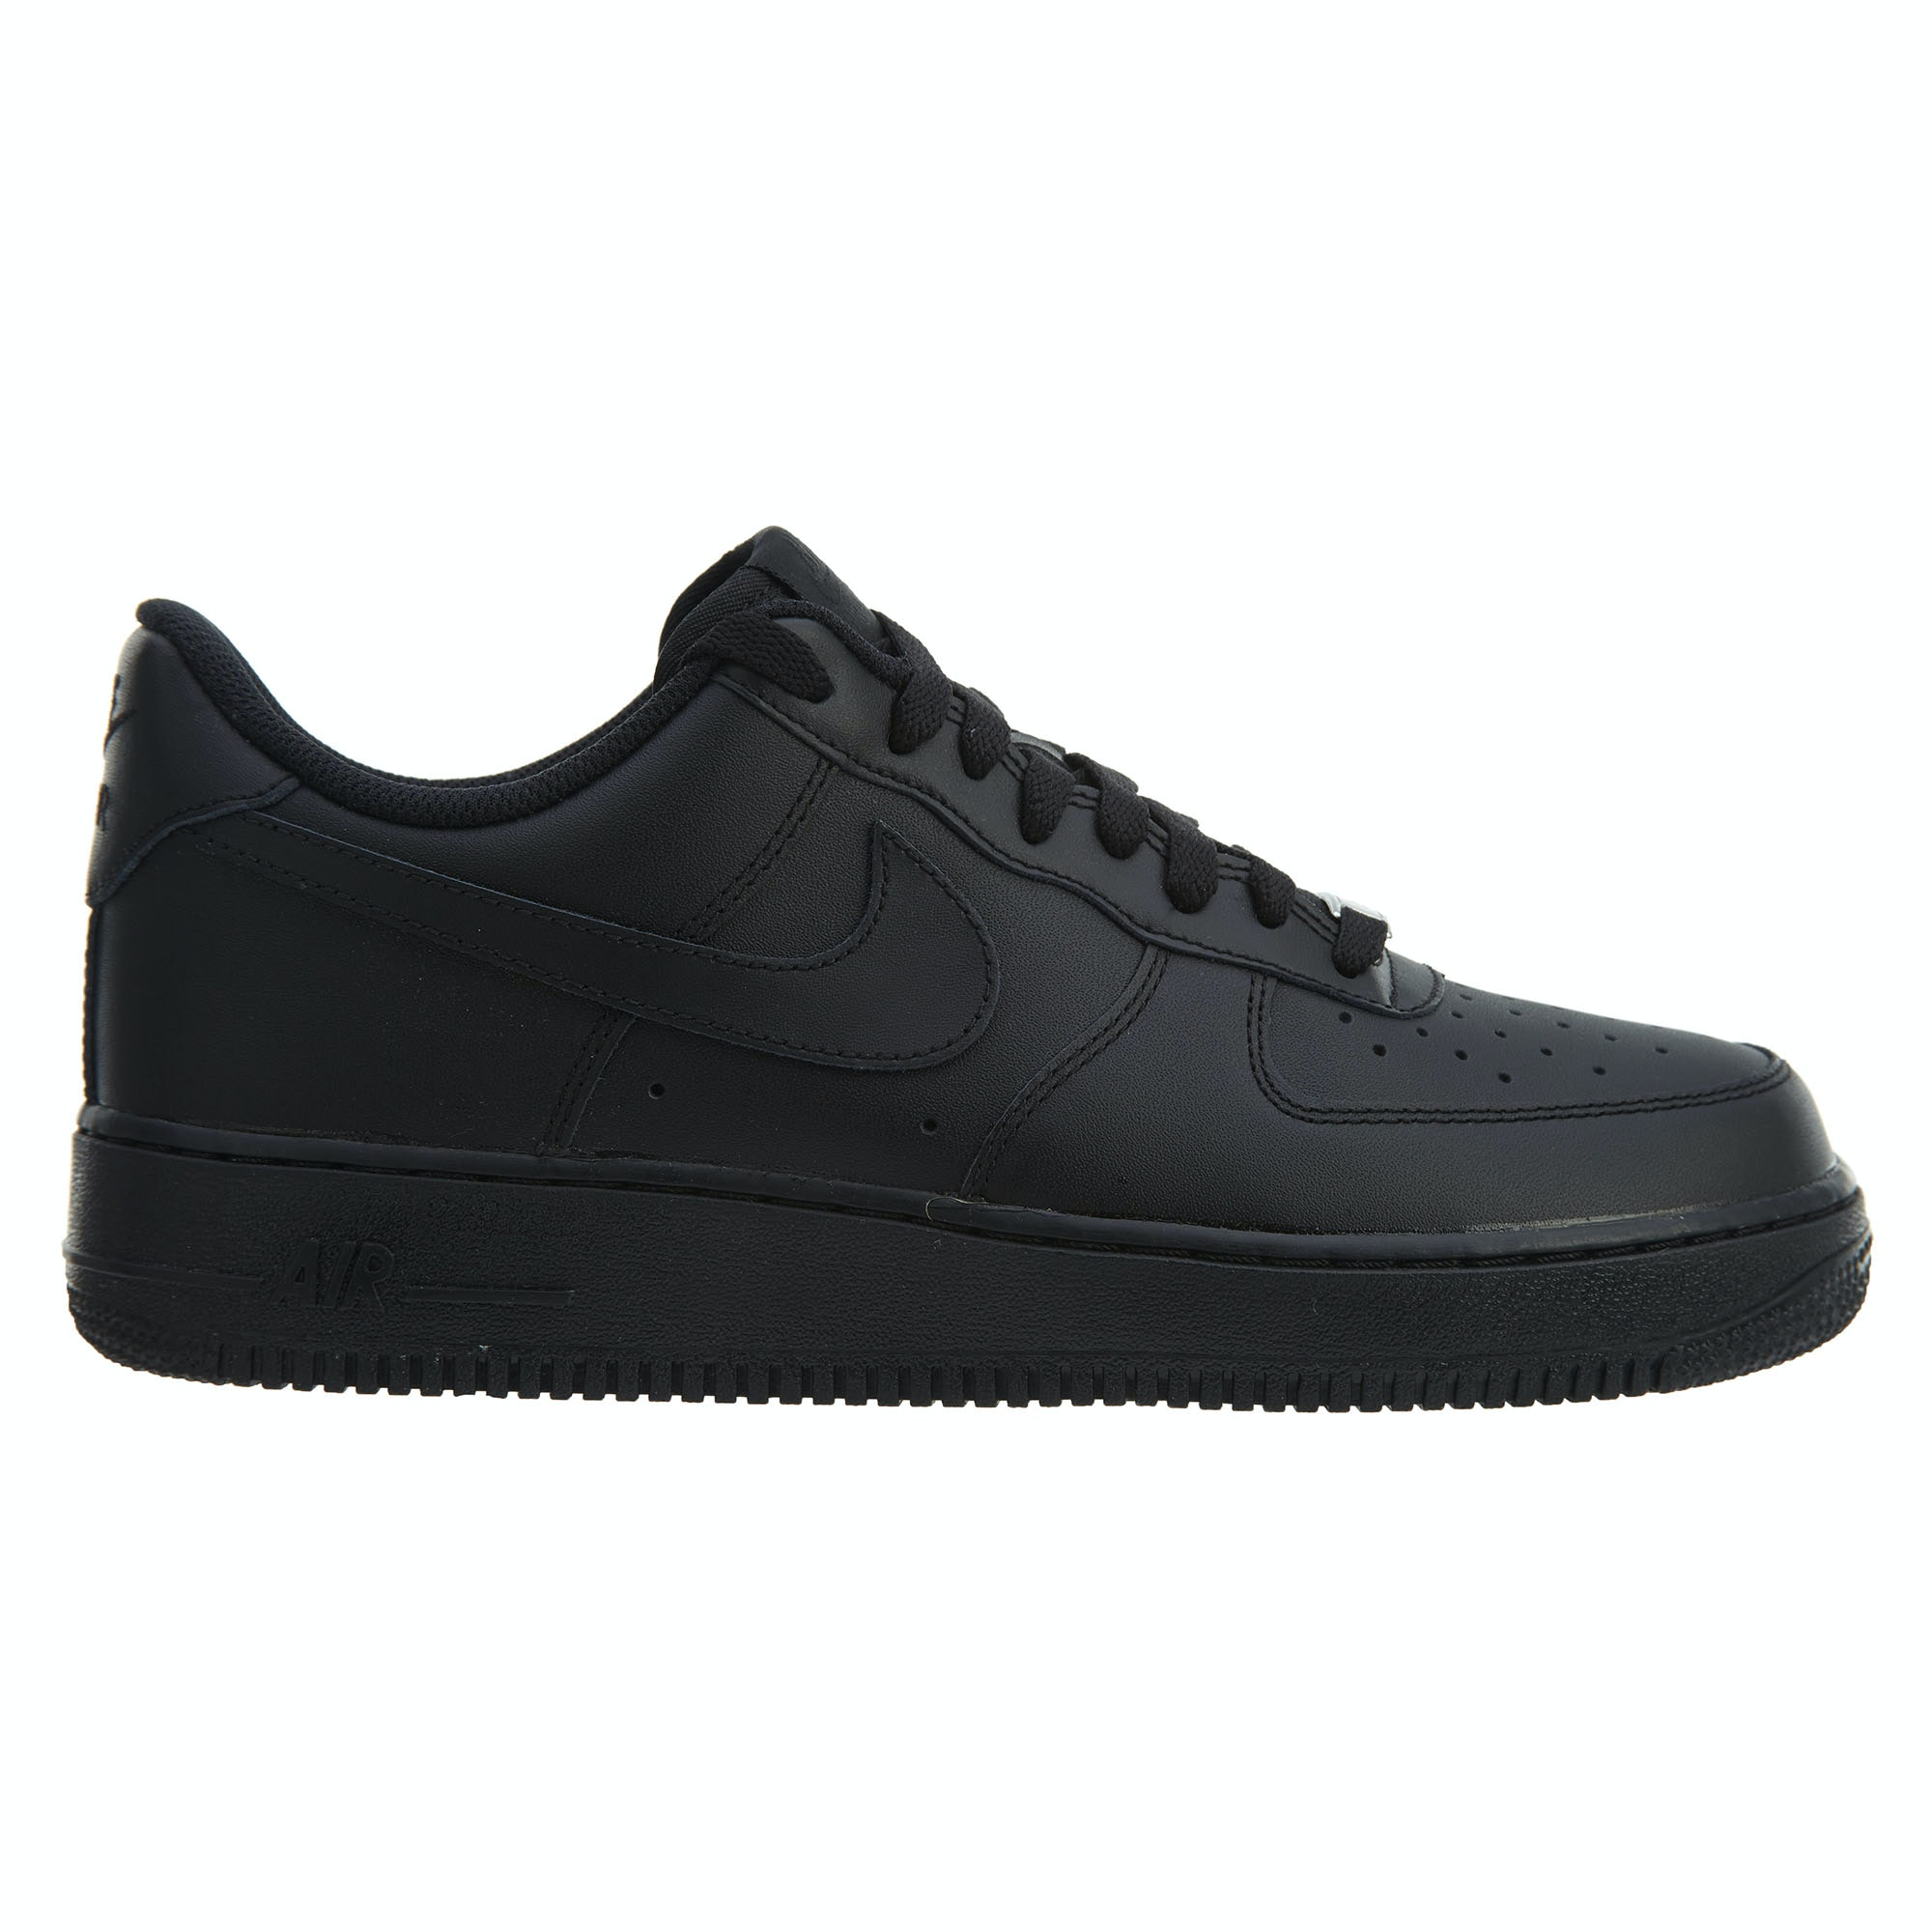 Nike Air Force 1 '07 Black/Black